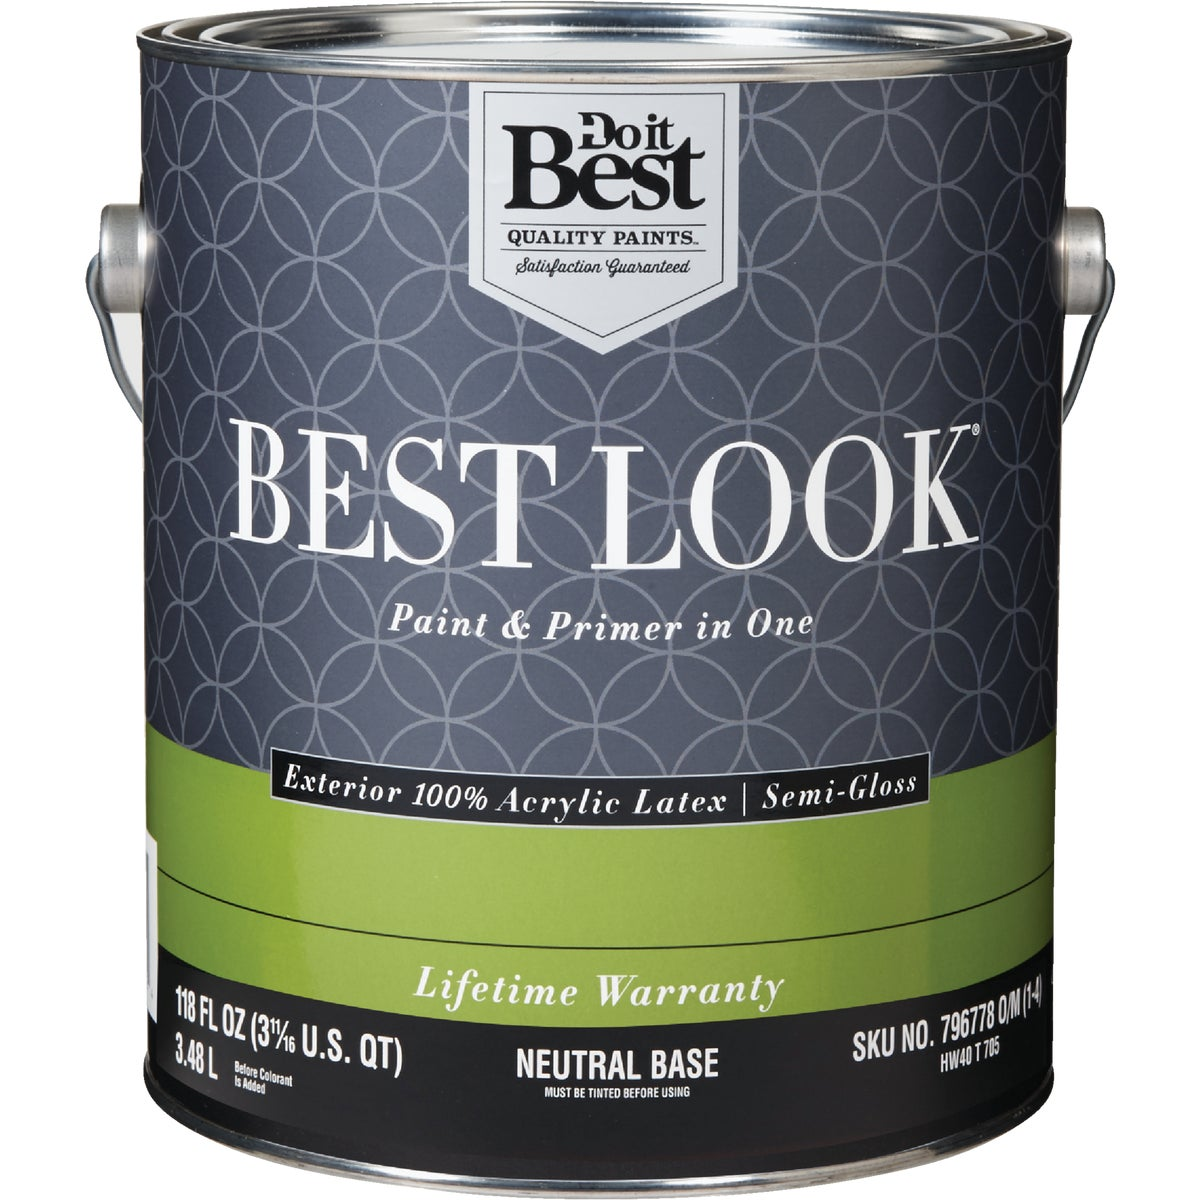 EXT S/G NEUTRAL BS PAINT - HW40T0705-16 by Do it Best